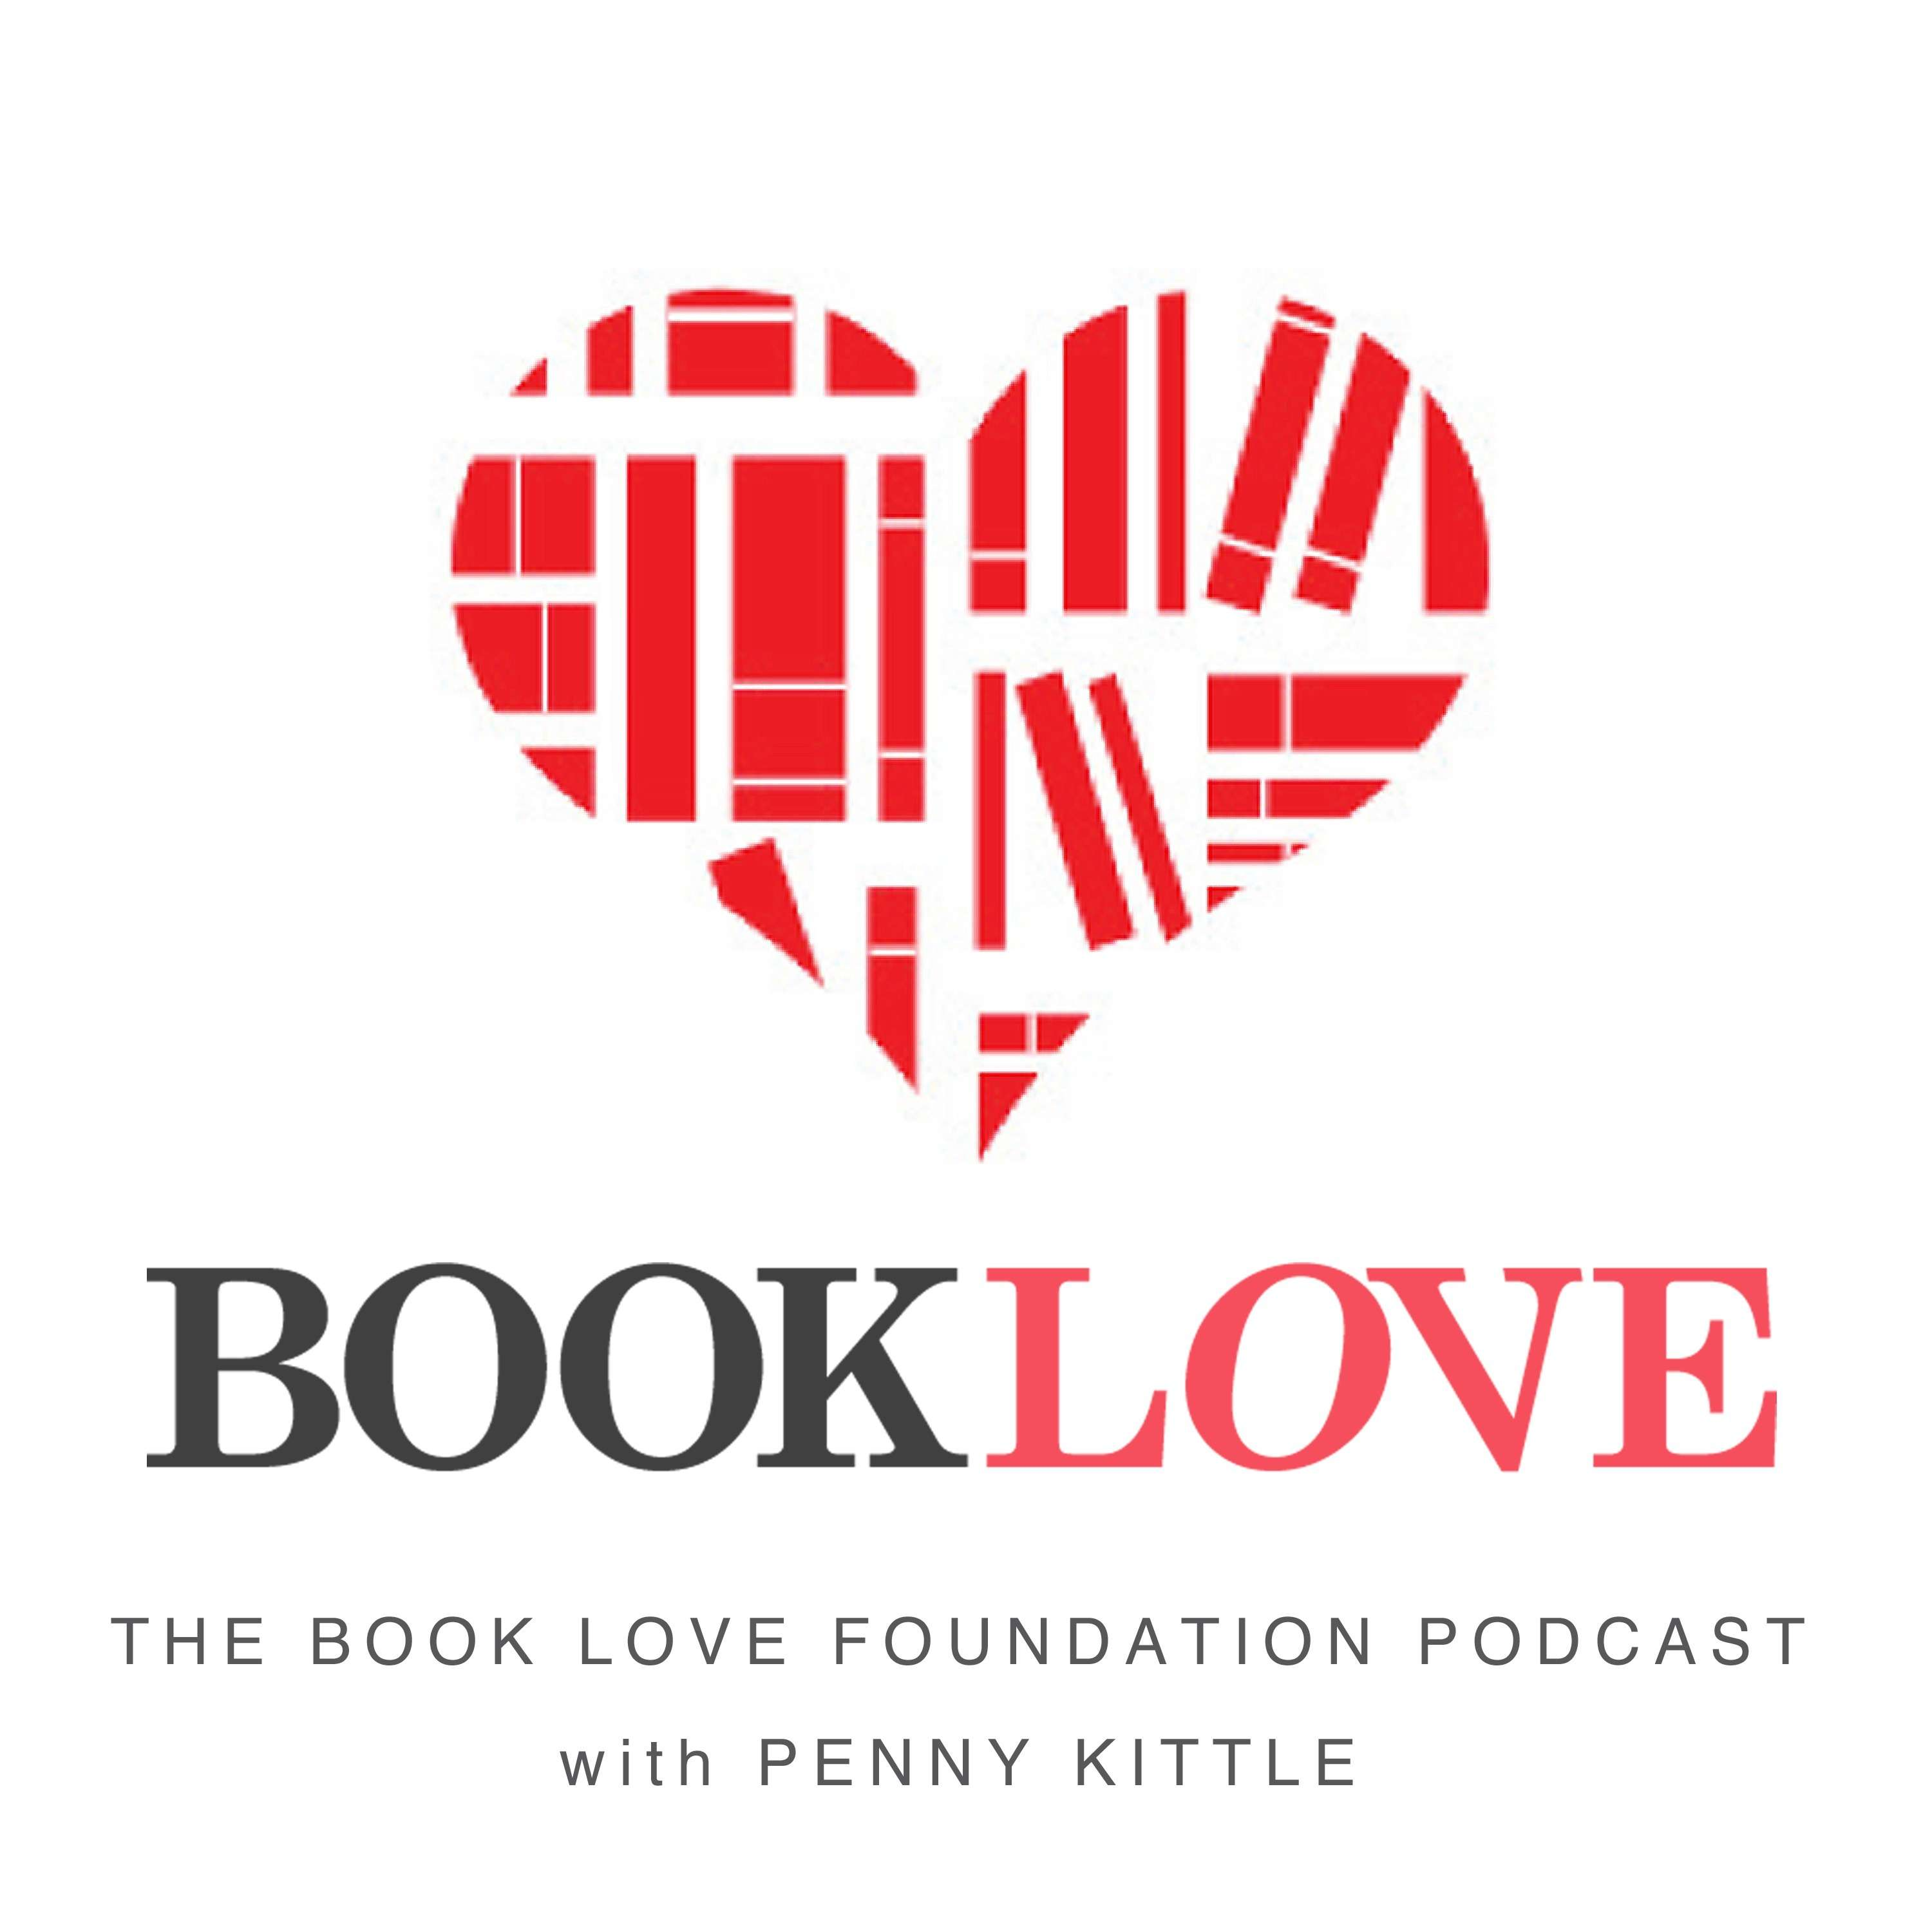 A Conversation with John Irving, Part 1. Season 2 Ep. 11 of the Book Love Foundation Podcast